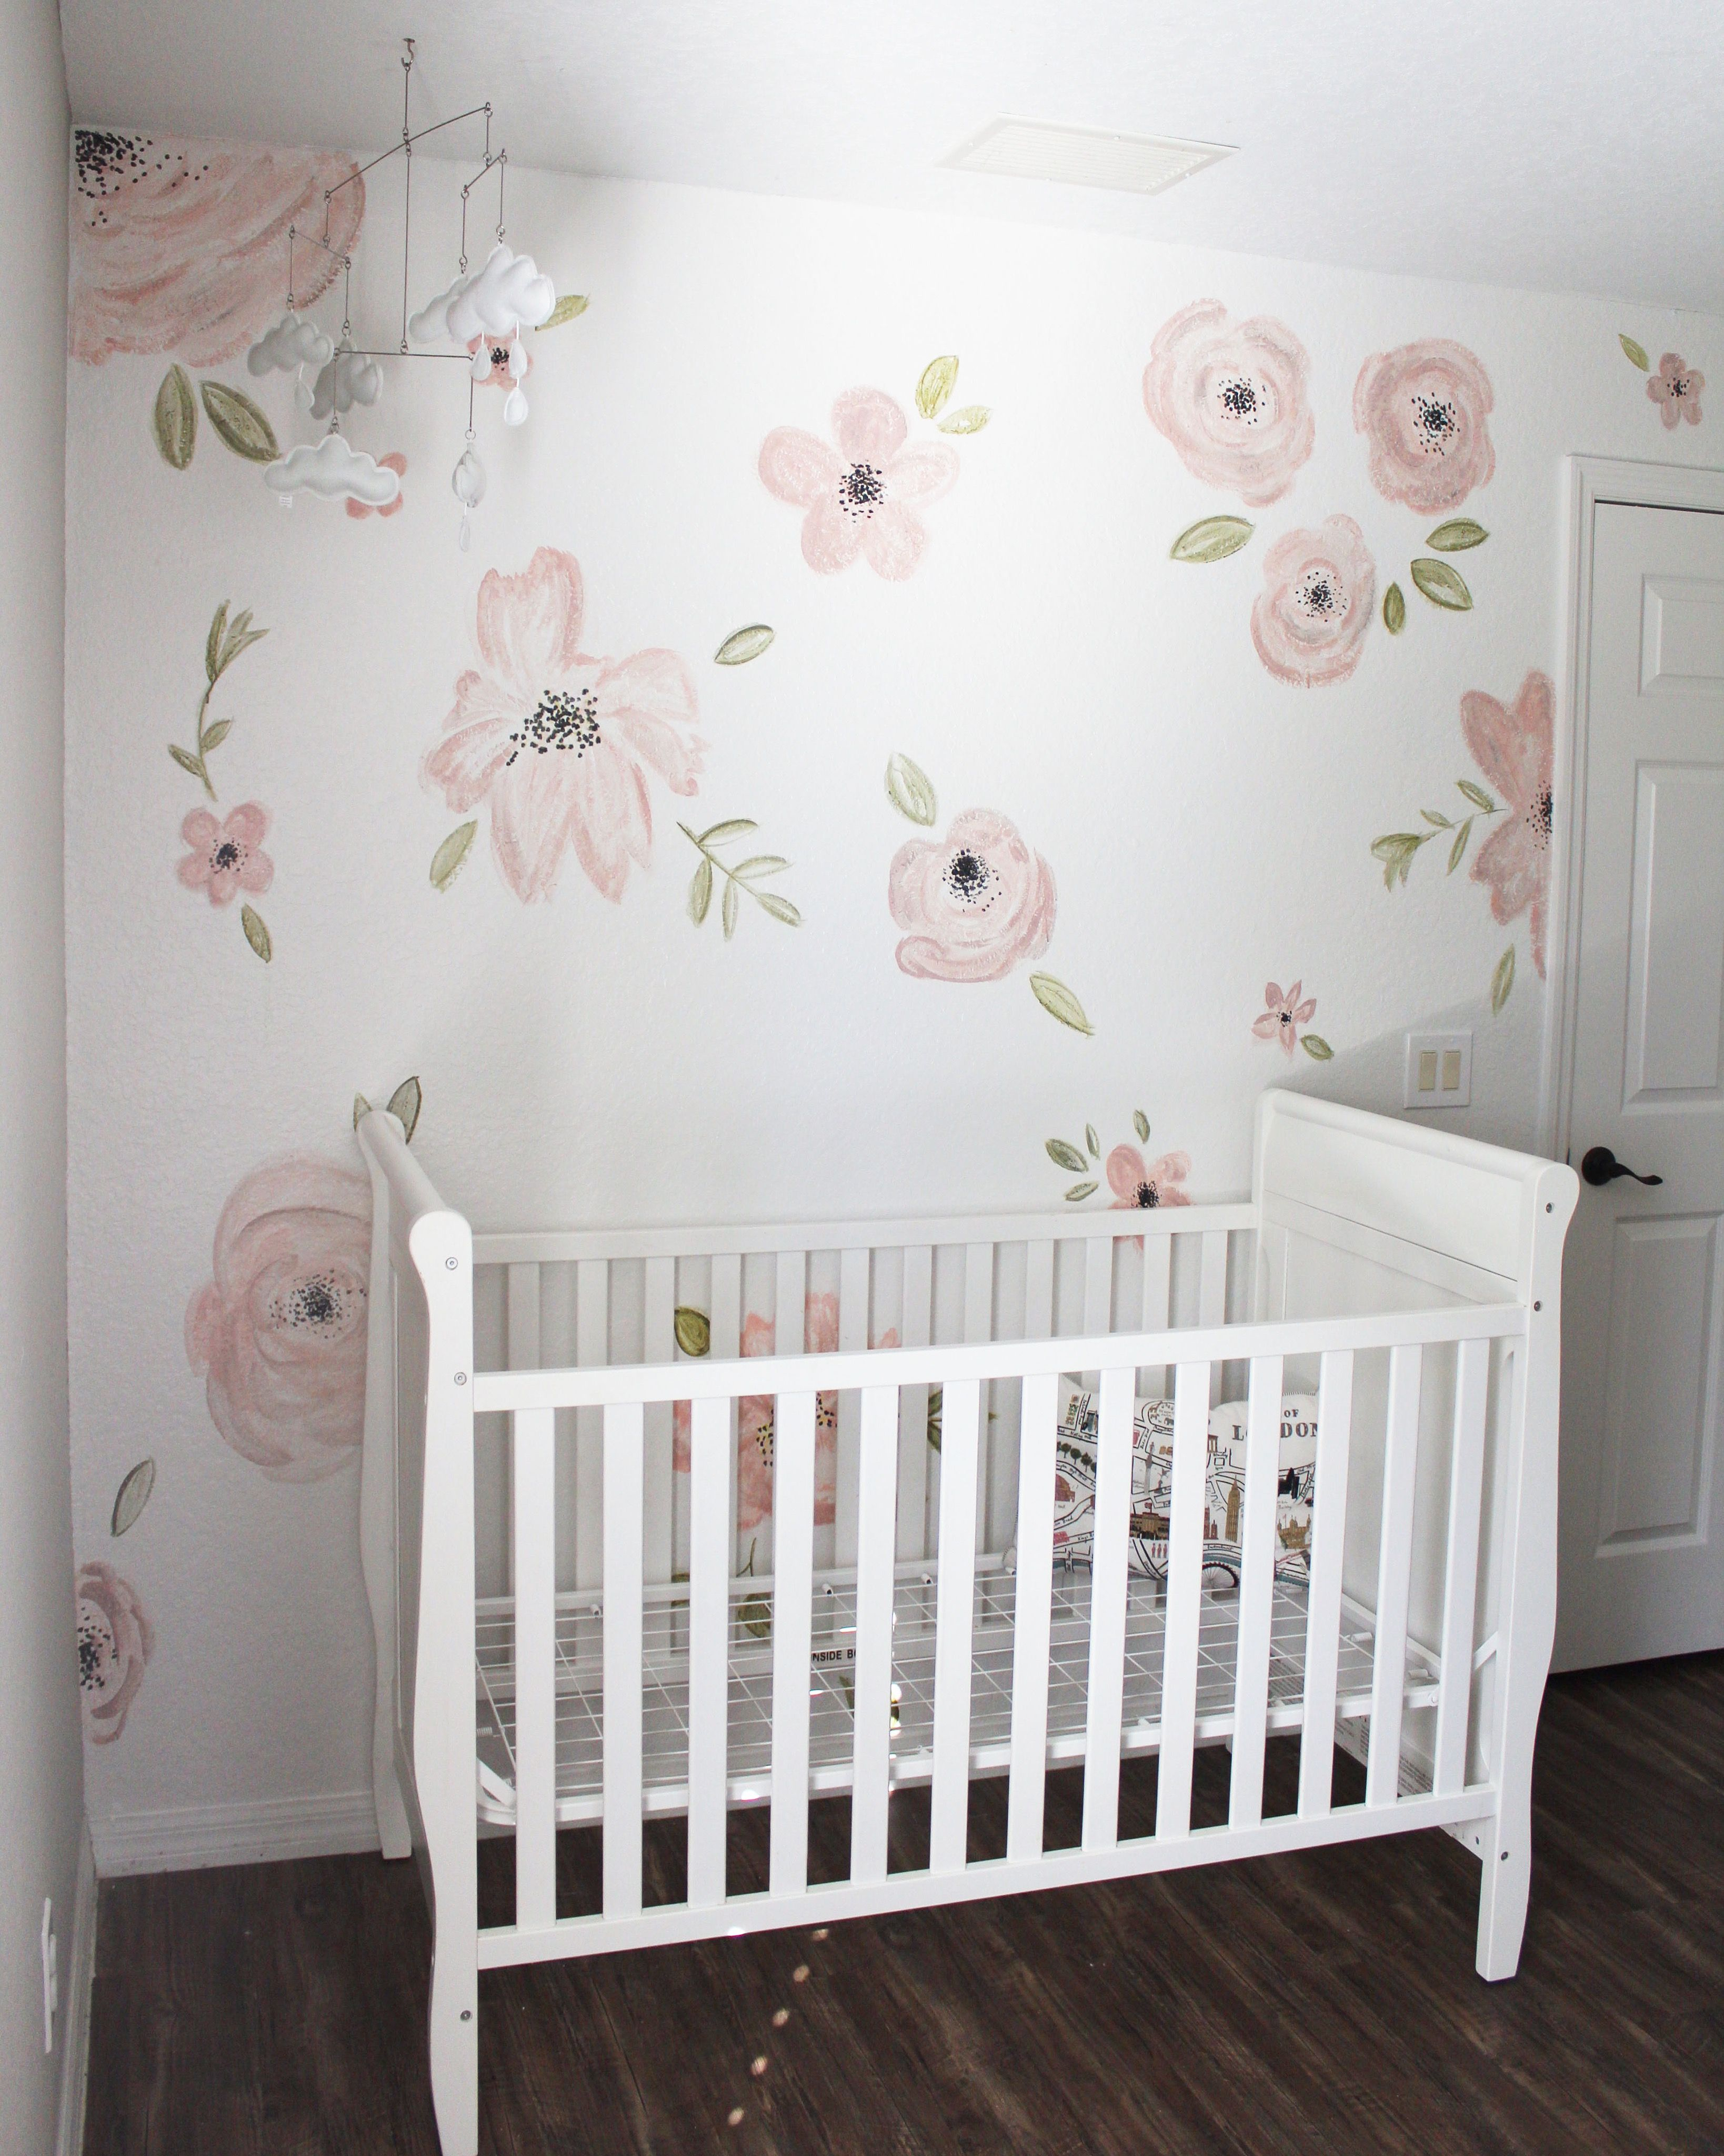 Baby cribs york region - Hand Painted Accent Wall For Nursery Floral Nursery Pink Peonies